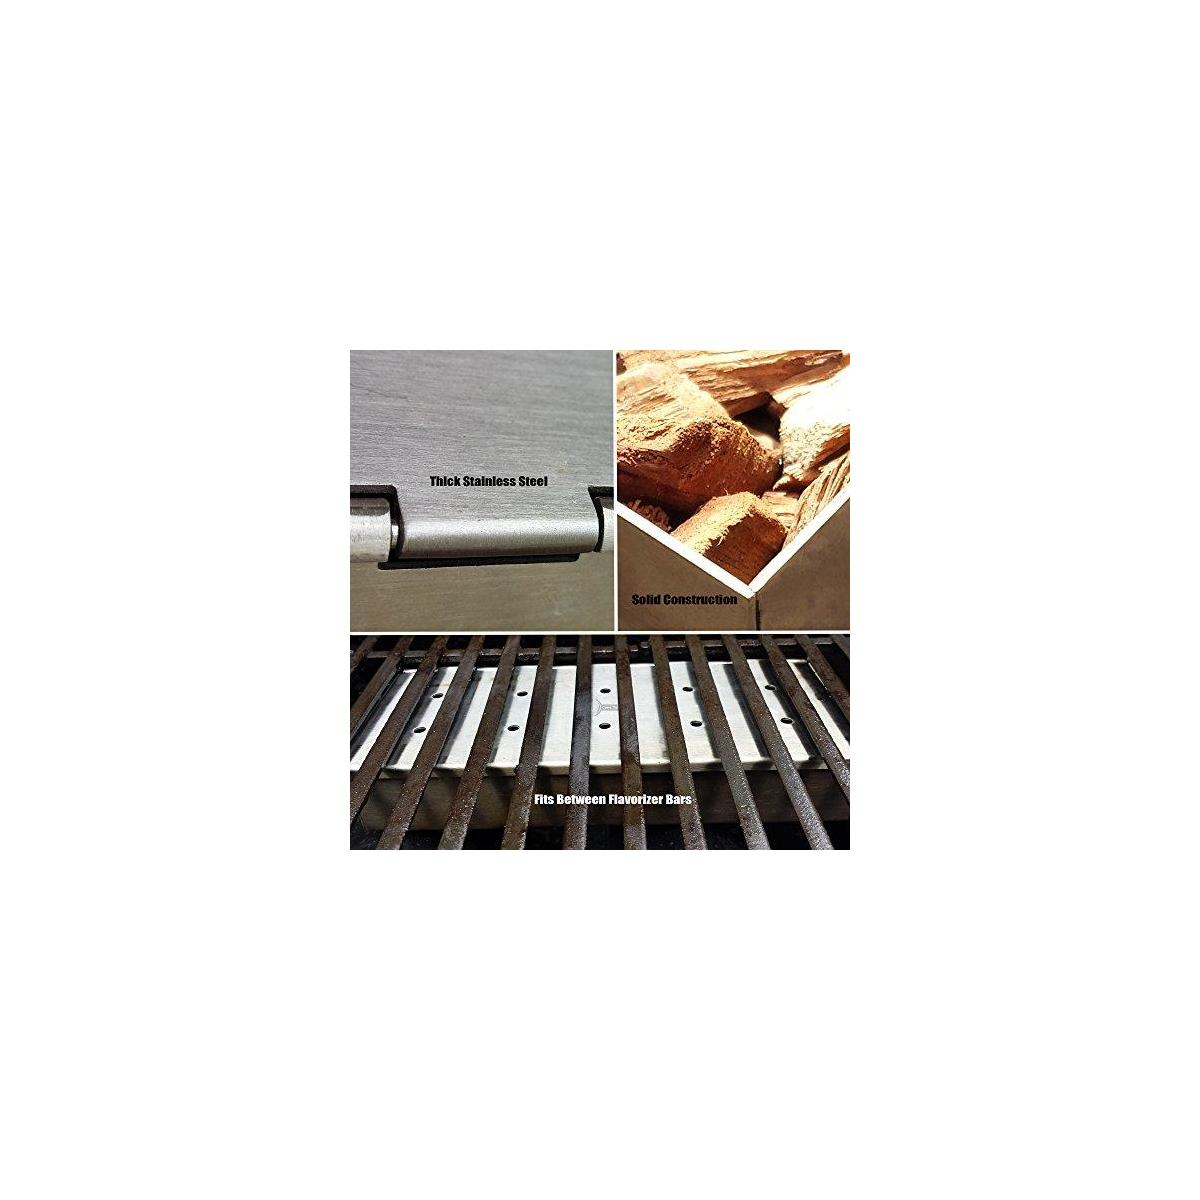 Cave Tools Smoker Box for BBQ Grill Wood Chips - 25% Thicker Stainless Steel Won't WARP - Charcoal & Gas Barbecue Meat Smoking with Hinged Lid - Best Grilling Accessories & Utensils Gift for Dad